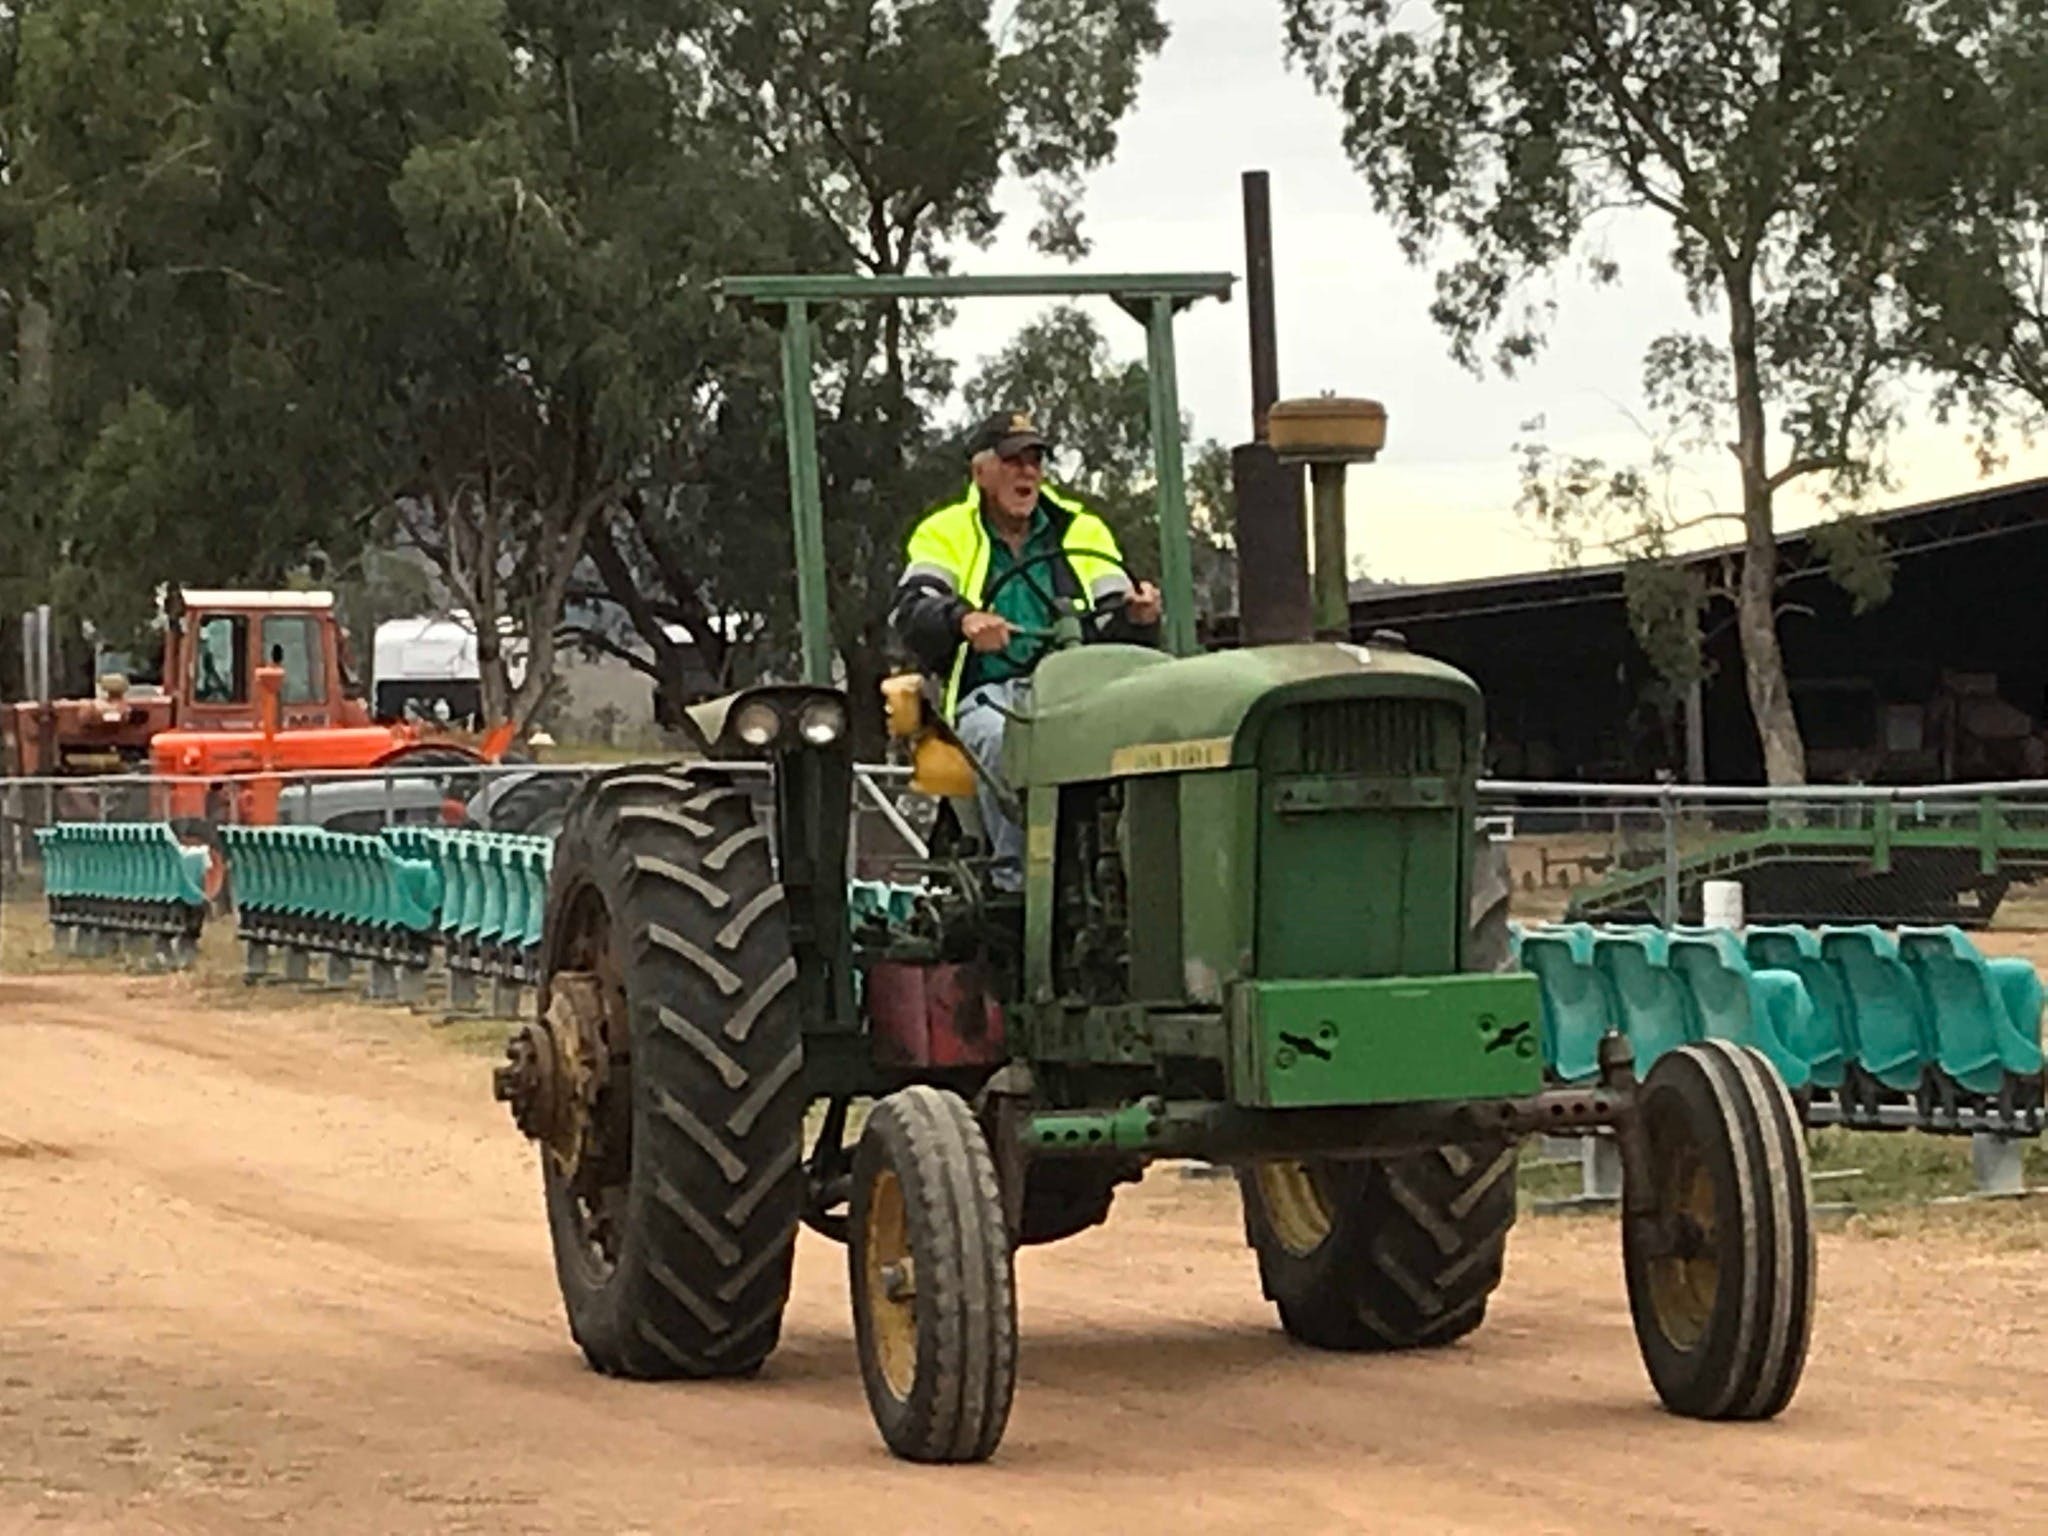 Liverpool Plains Wheels in Motion - New South Wales Tourism